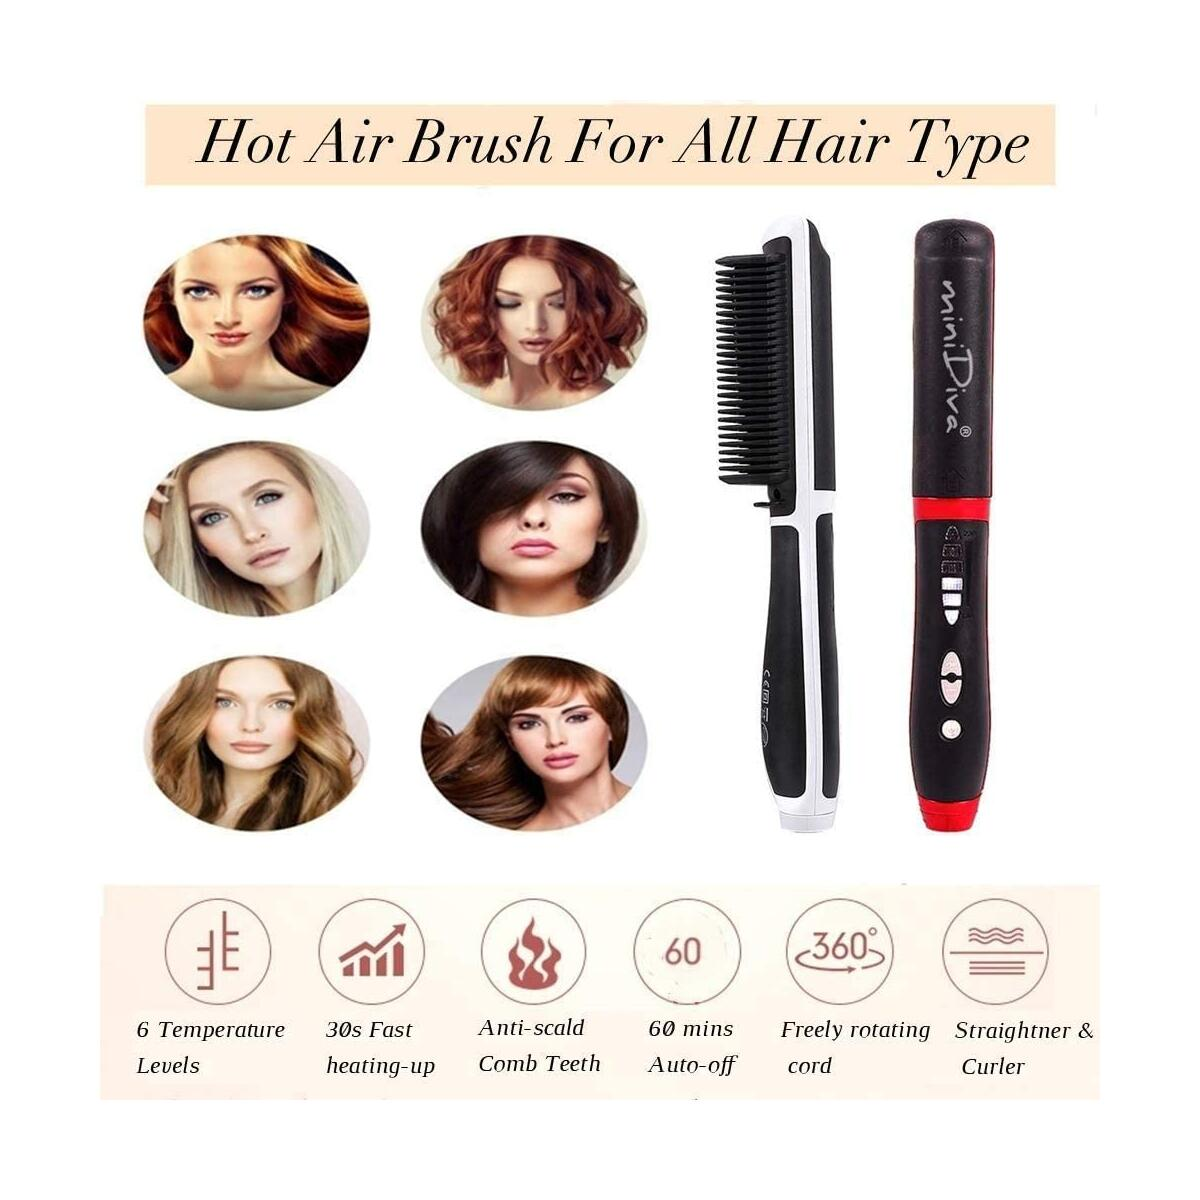 Hot Comb Hair Straightener and Curler 2-in-1 with Anti-Scald Technology, Fast Heating (30s) - Red/White